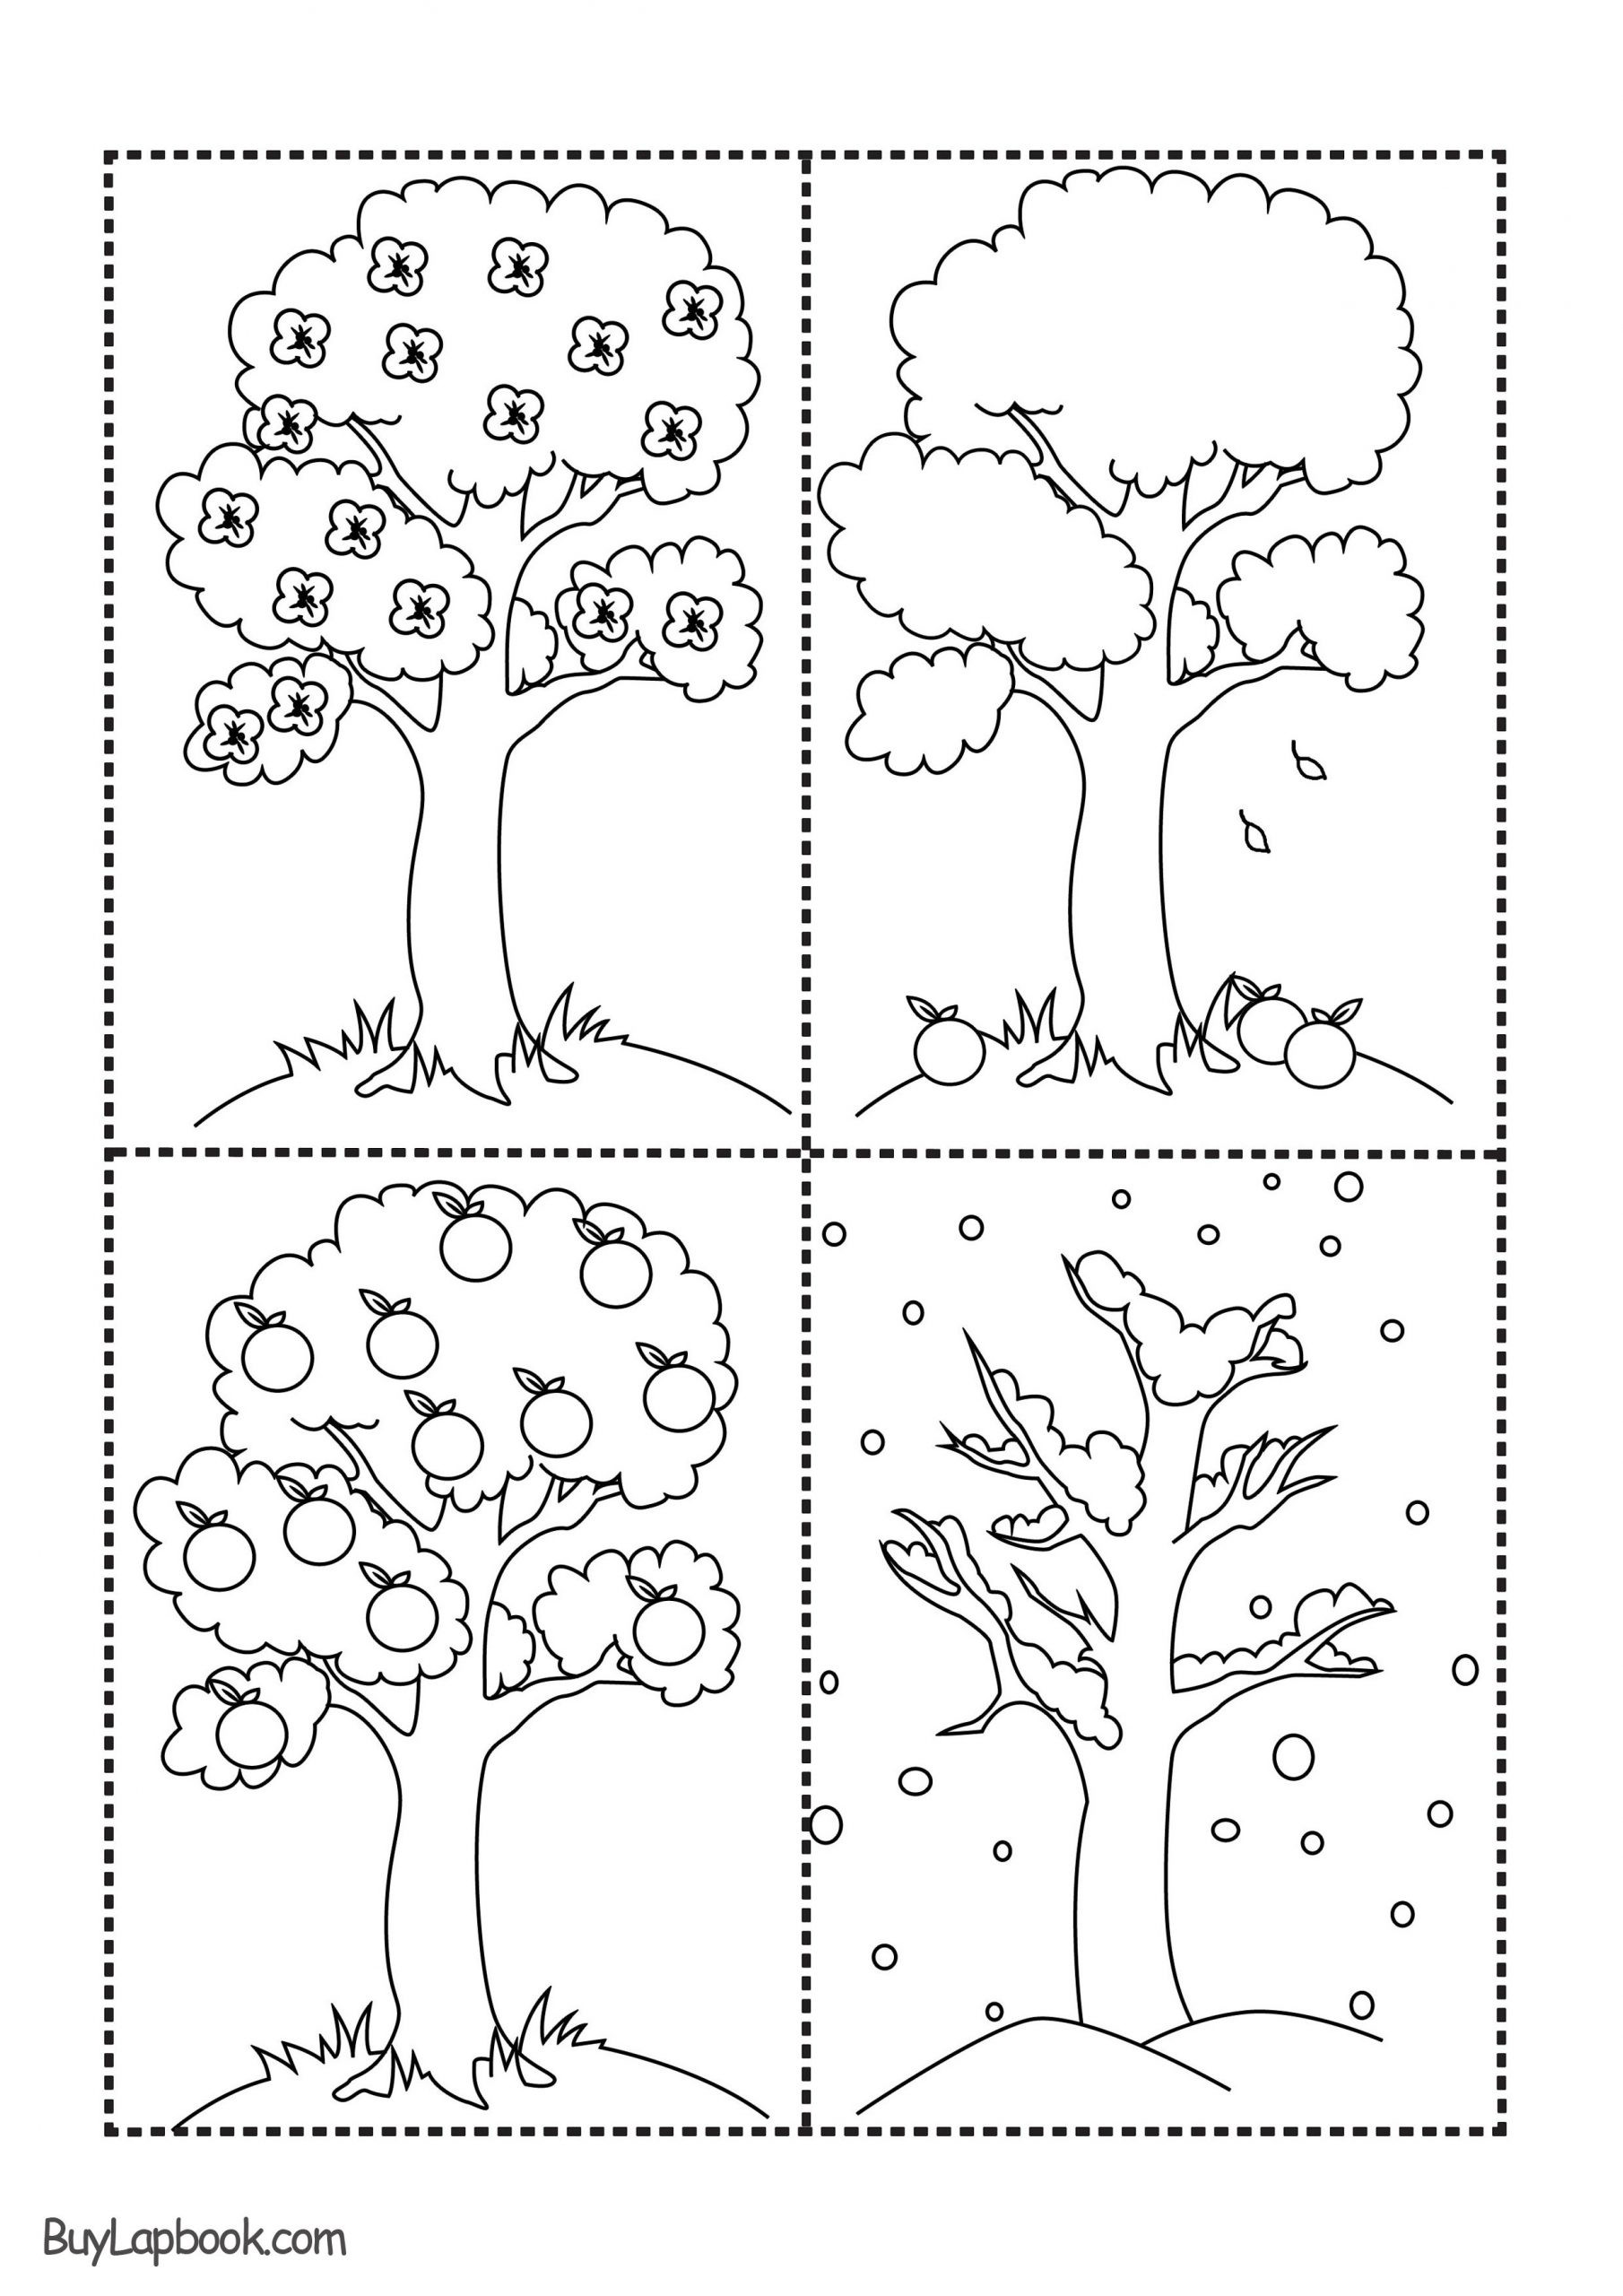 Seasons Worksheet Middle School Worksheet From Home